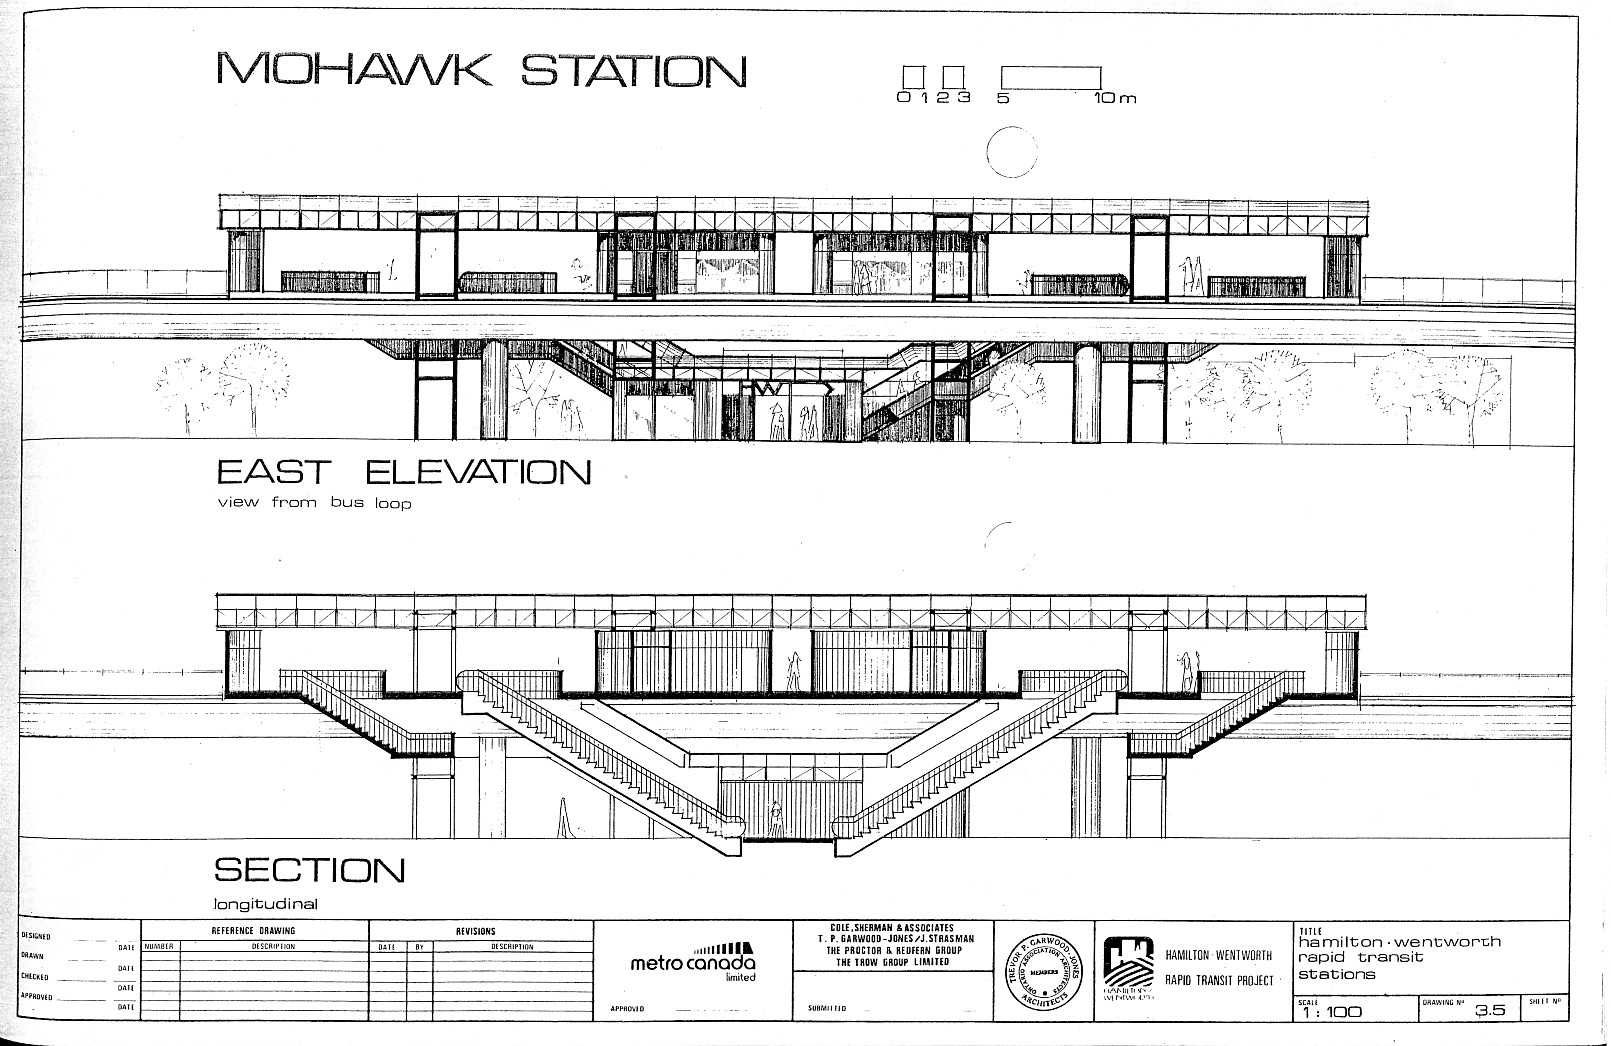 Plan Elevation Section Of Bus Stop : East elevation view of mohawk station